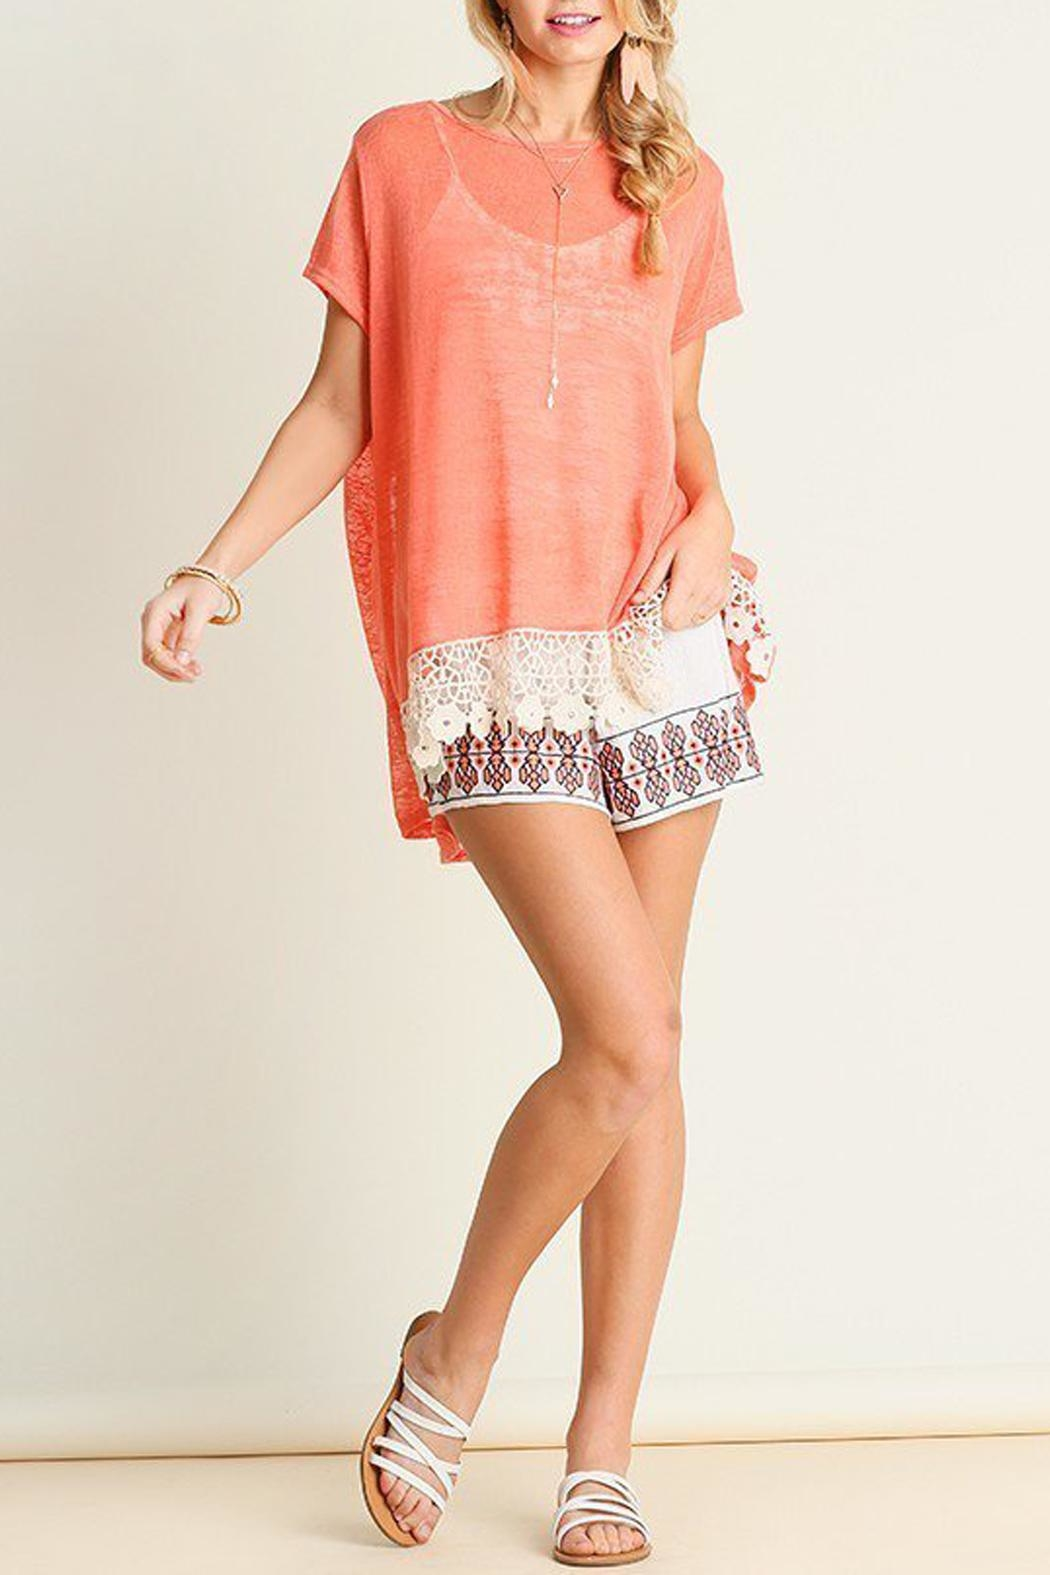 Umgee USA Coral-Knit Crochet-Hem Top - Front Full Image